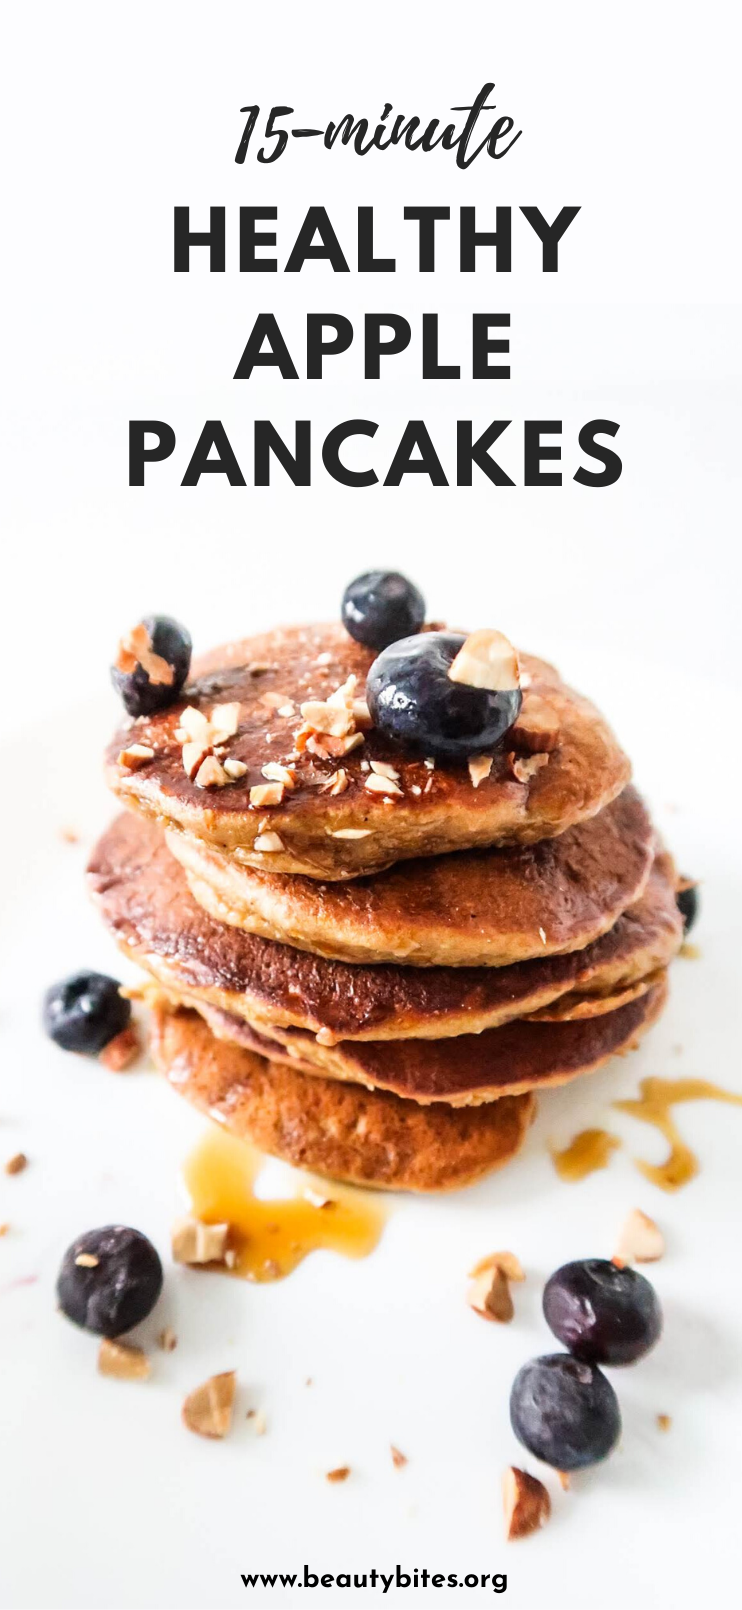 Healthy breakfast apple pancakes! These apple oatmeal pancakes are absolutely delicious and so easy to make - it takes around 15 minutes and you'll want to make them again and again! Easy clean eating breakfast recipe